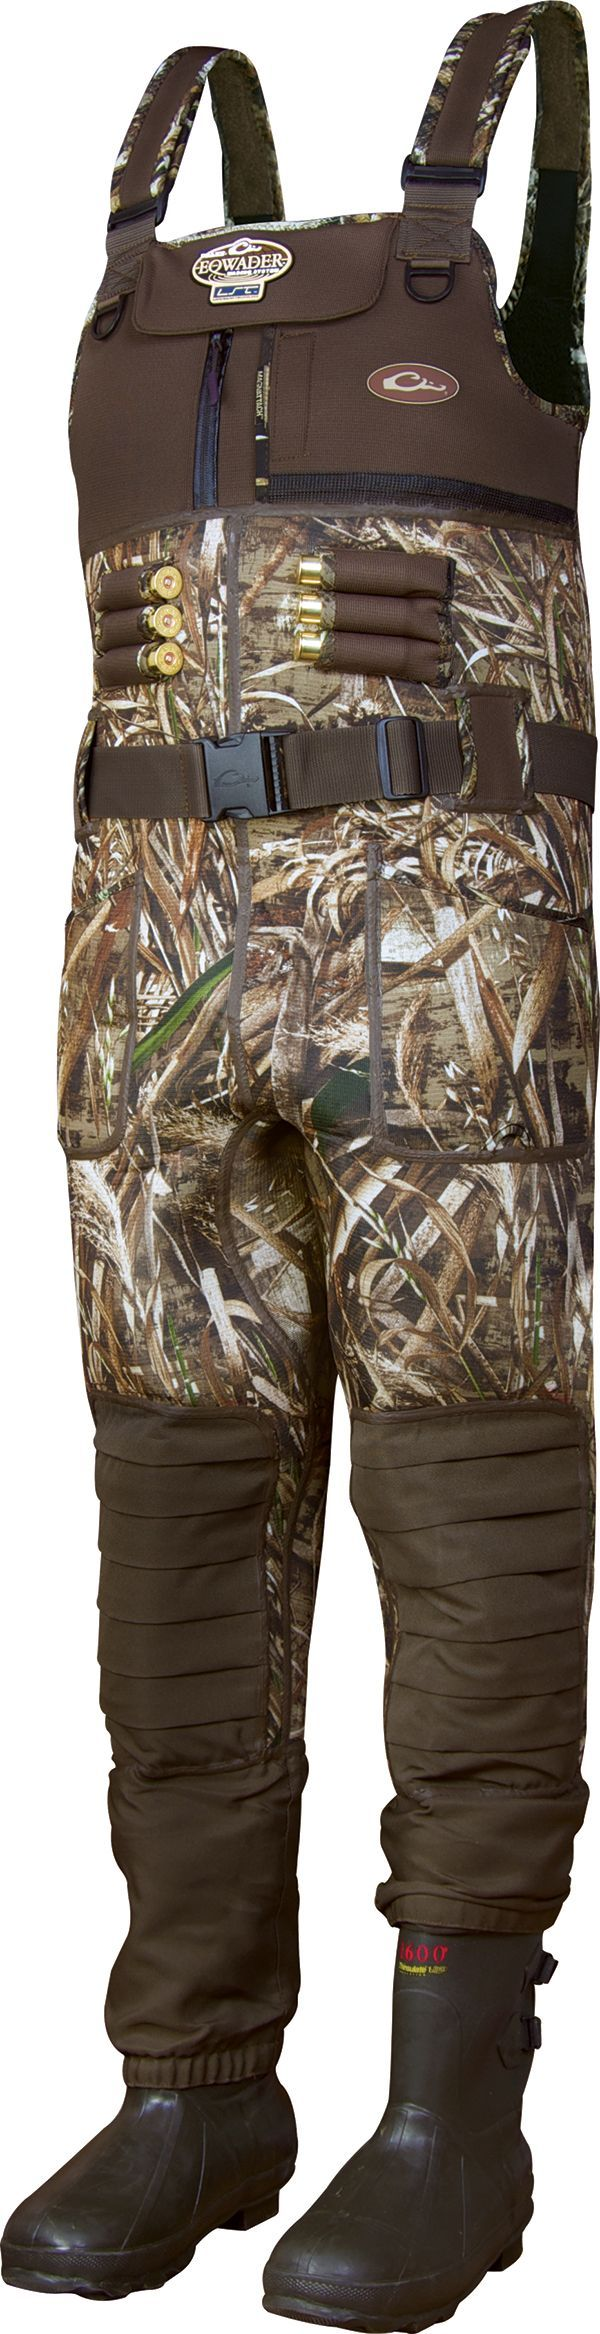 LST Eqwader 2.0 Waders | Drake Waterfowl